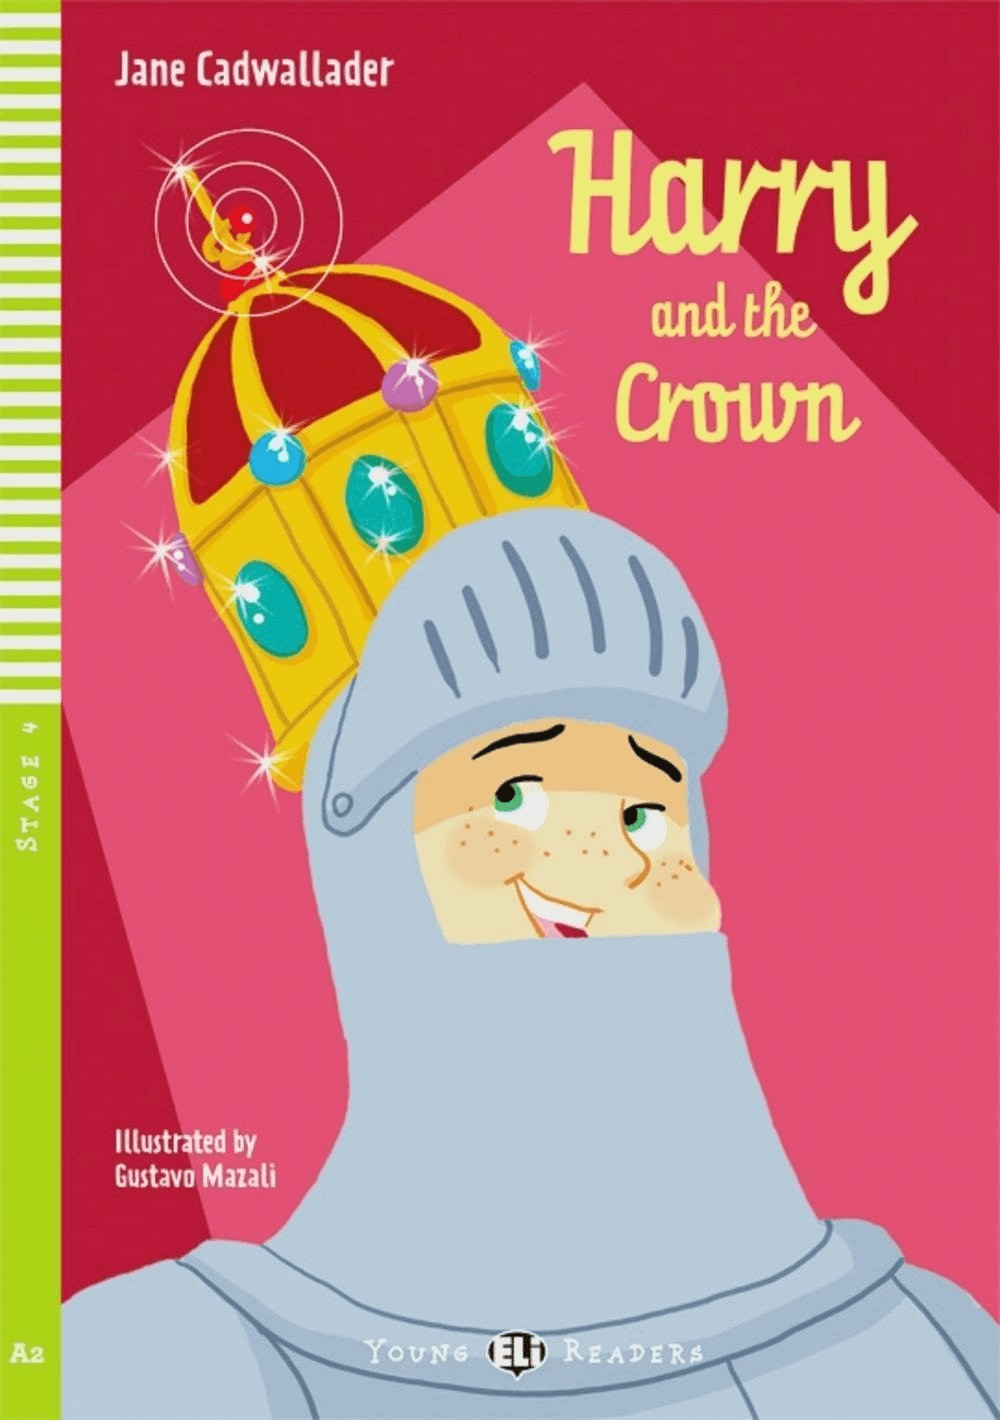 Harry and the Crown (Cadwallader, Jane)